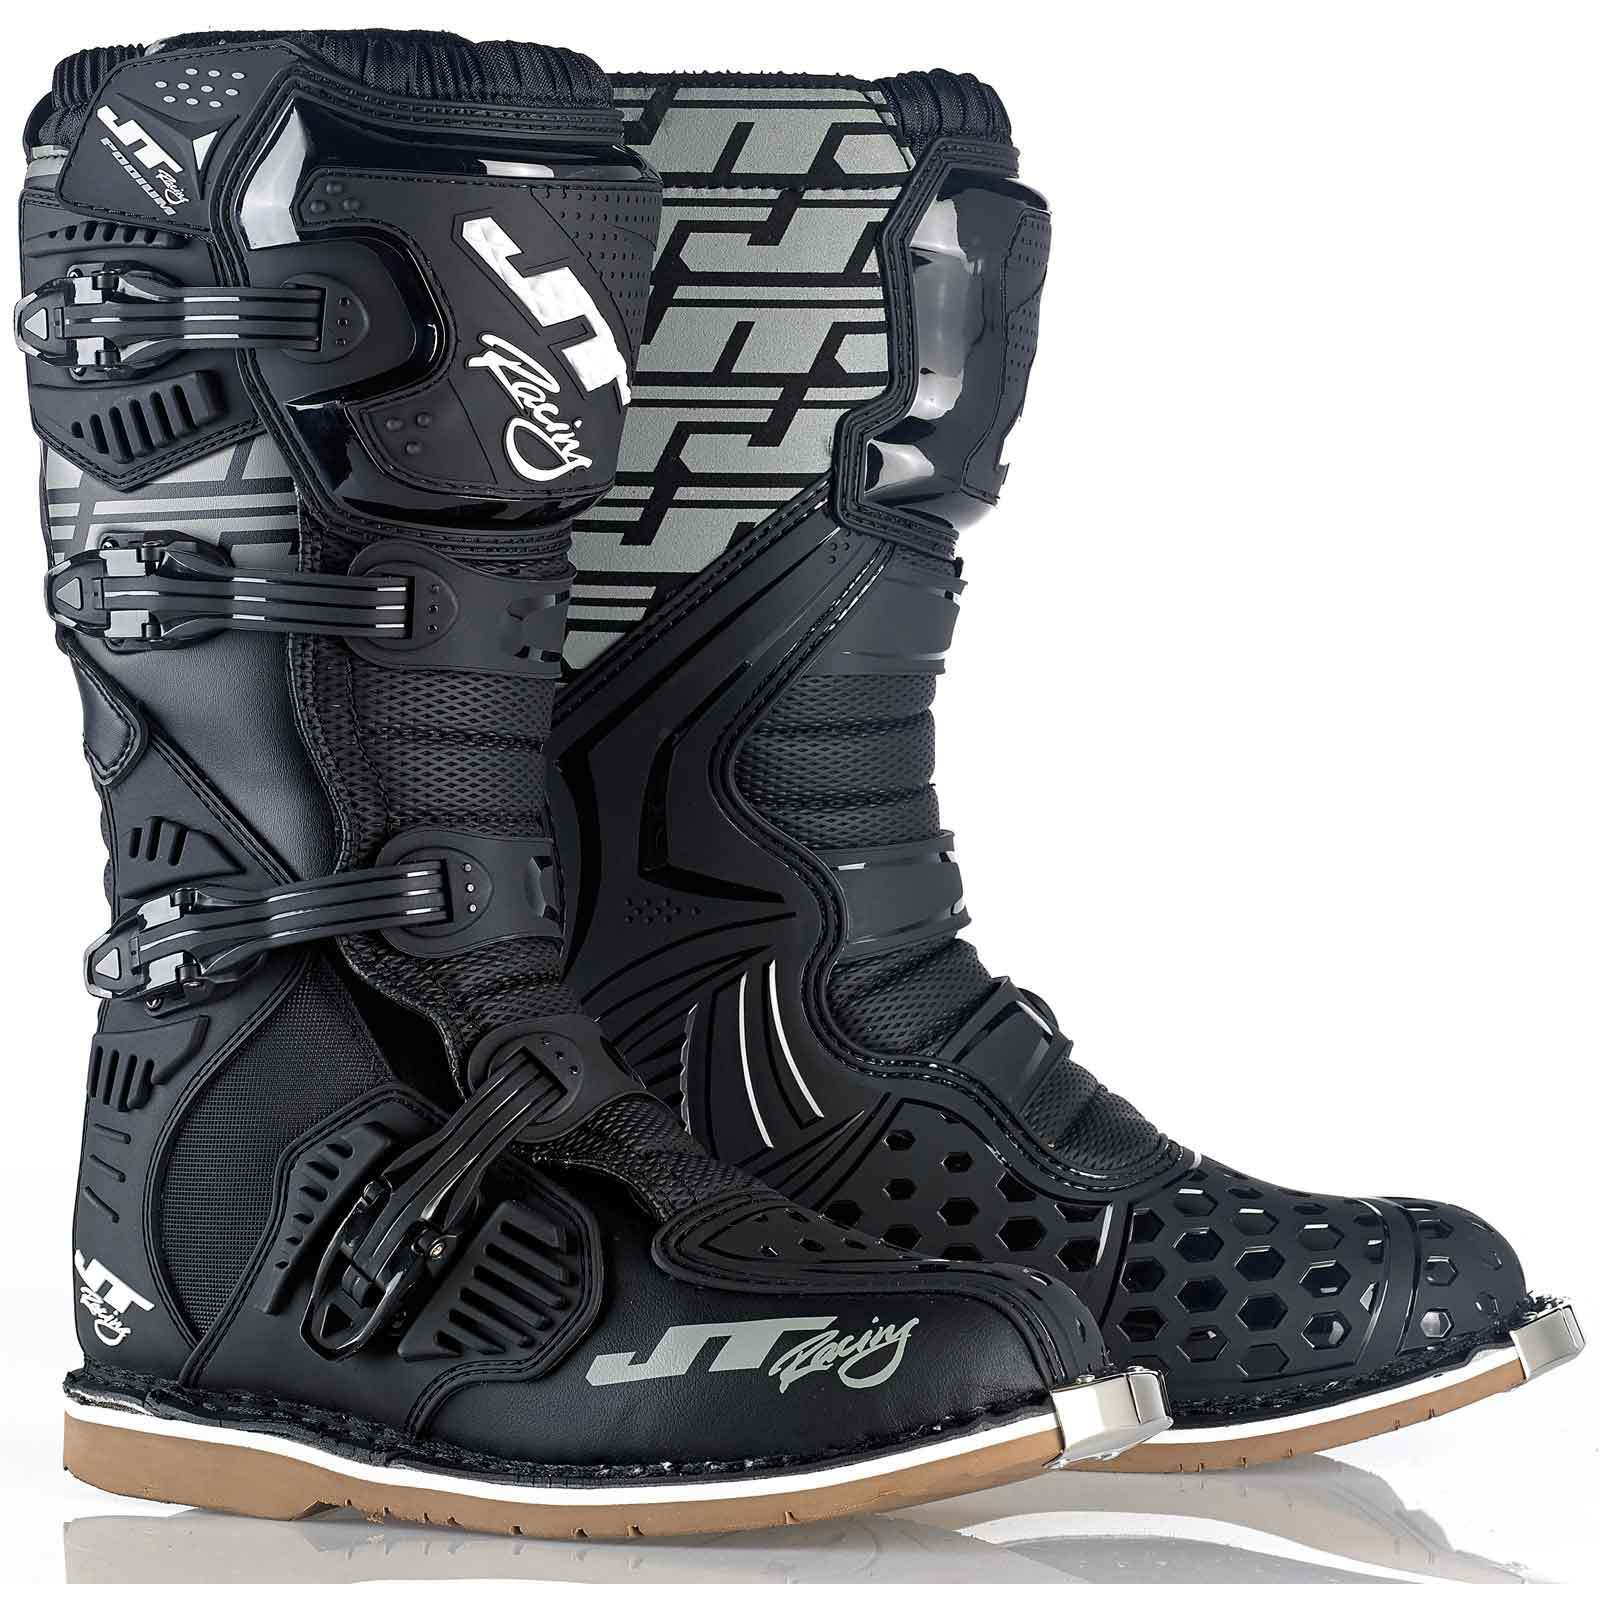 JT RACING USA Podium Boots, Black